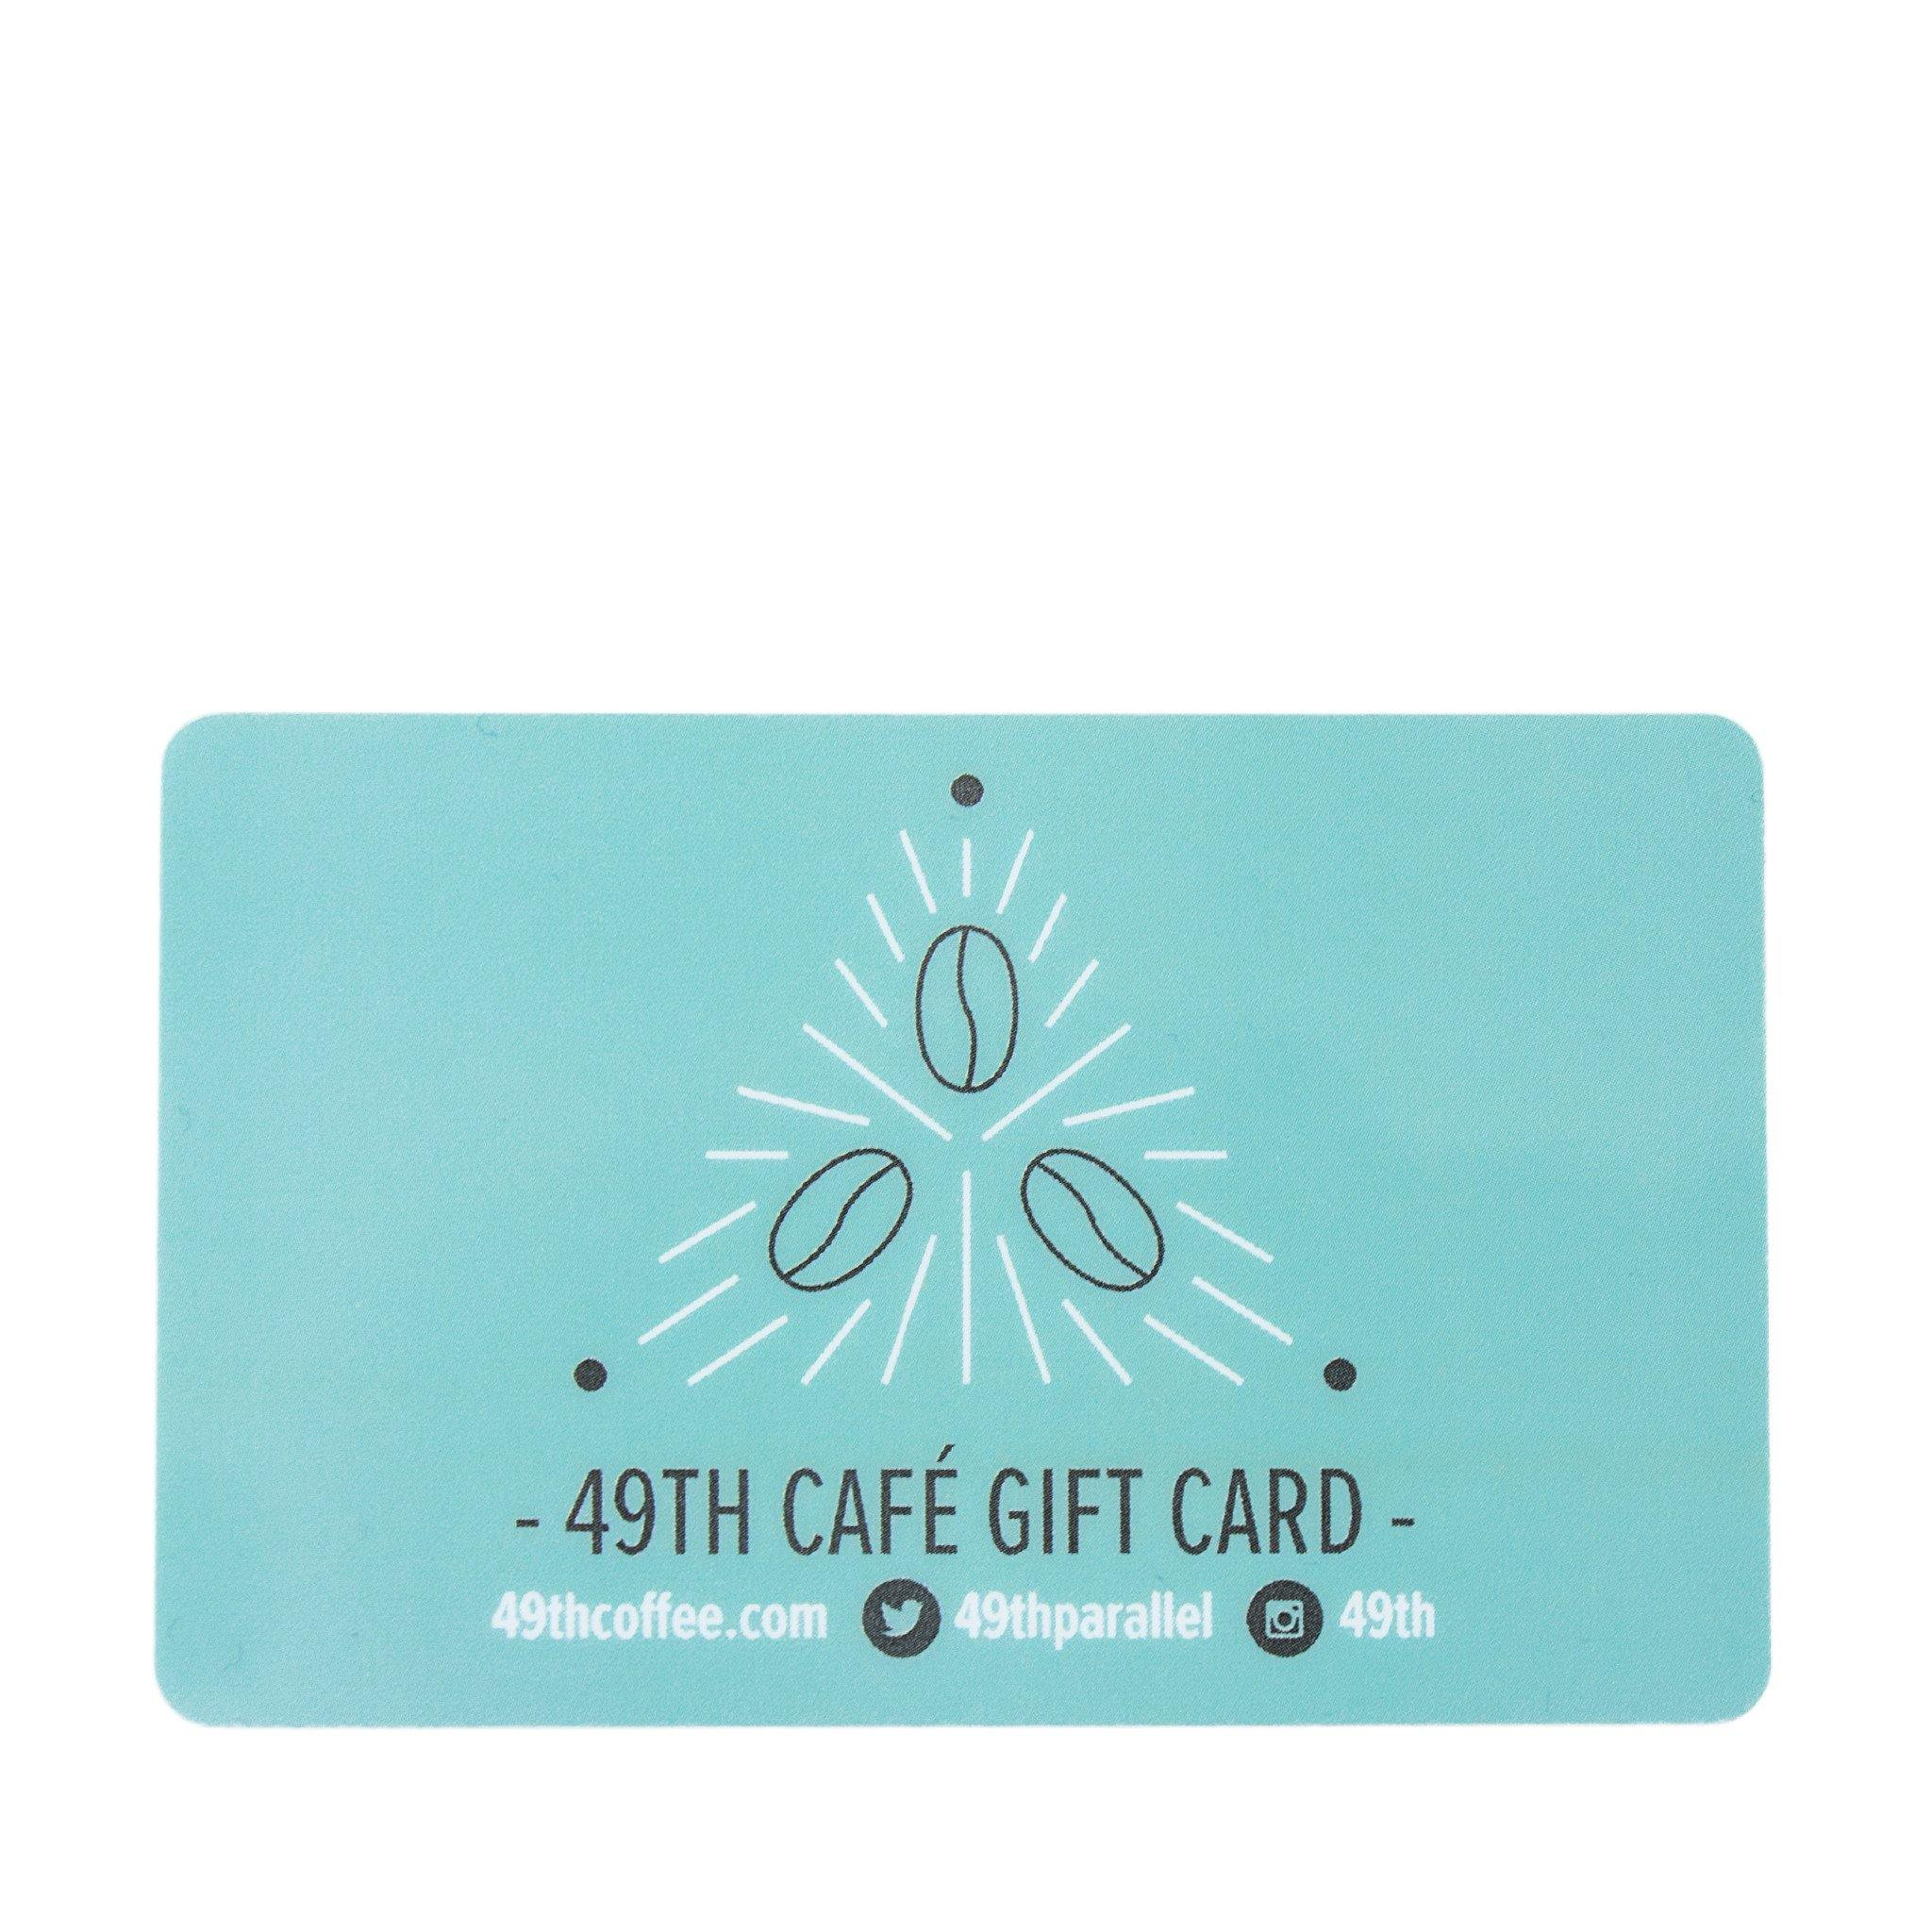 49th Parallel Café Giftcard